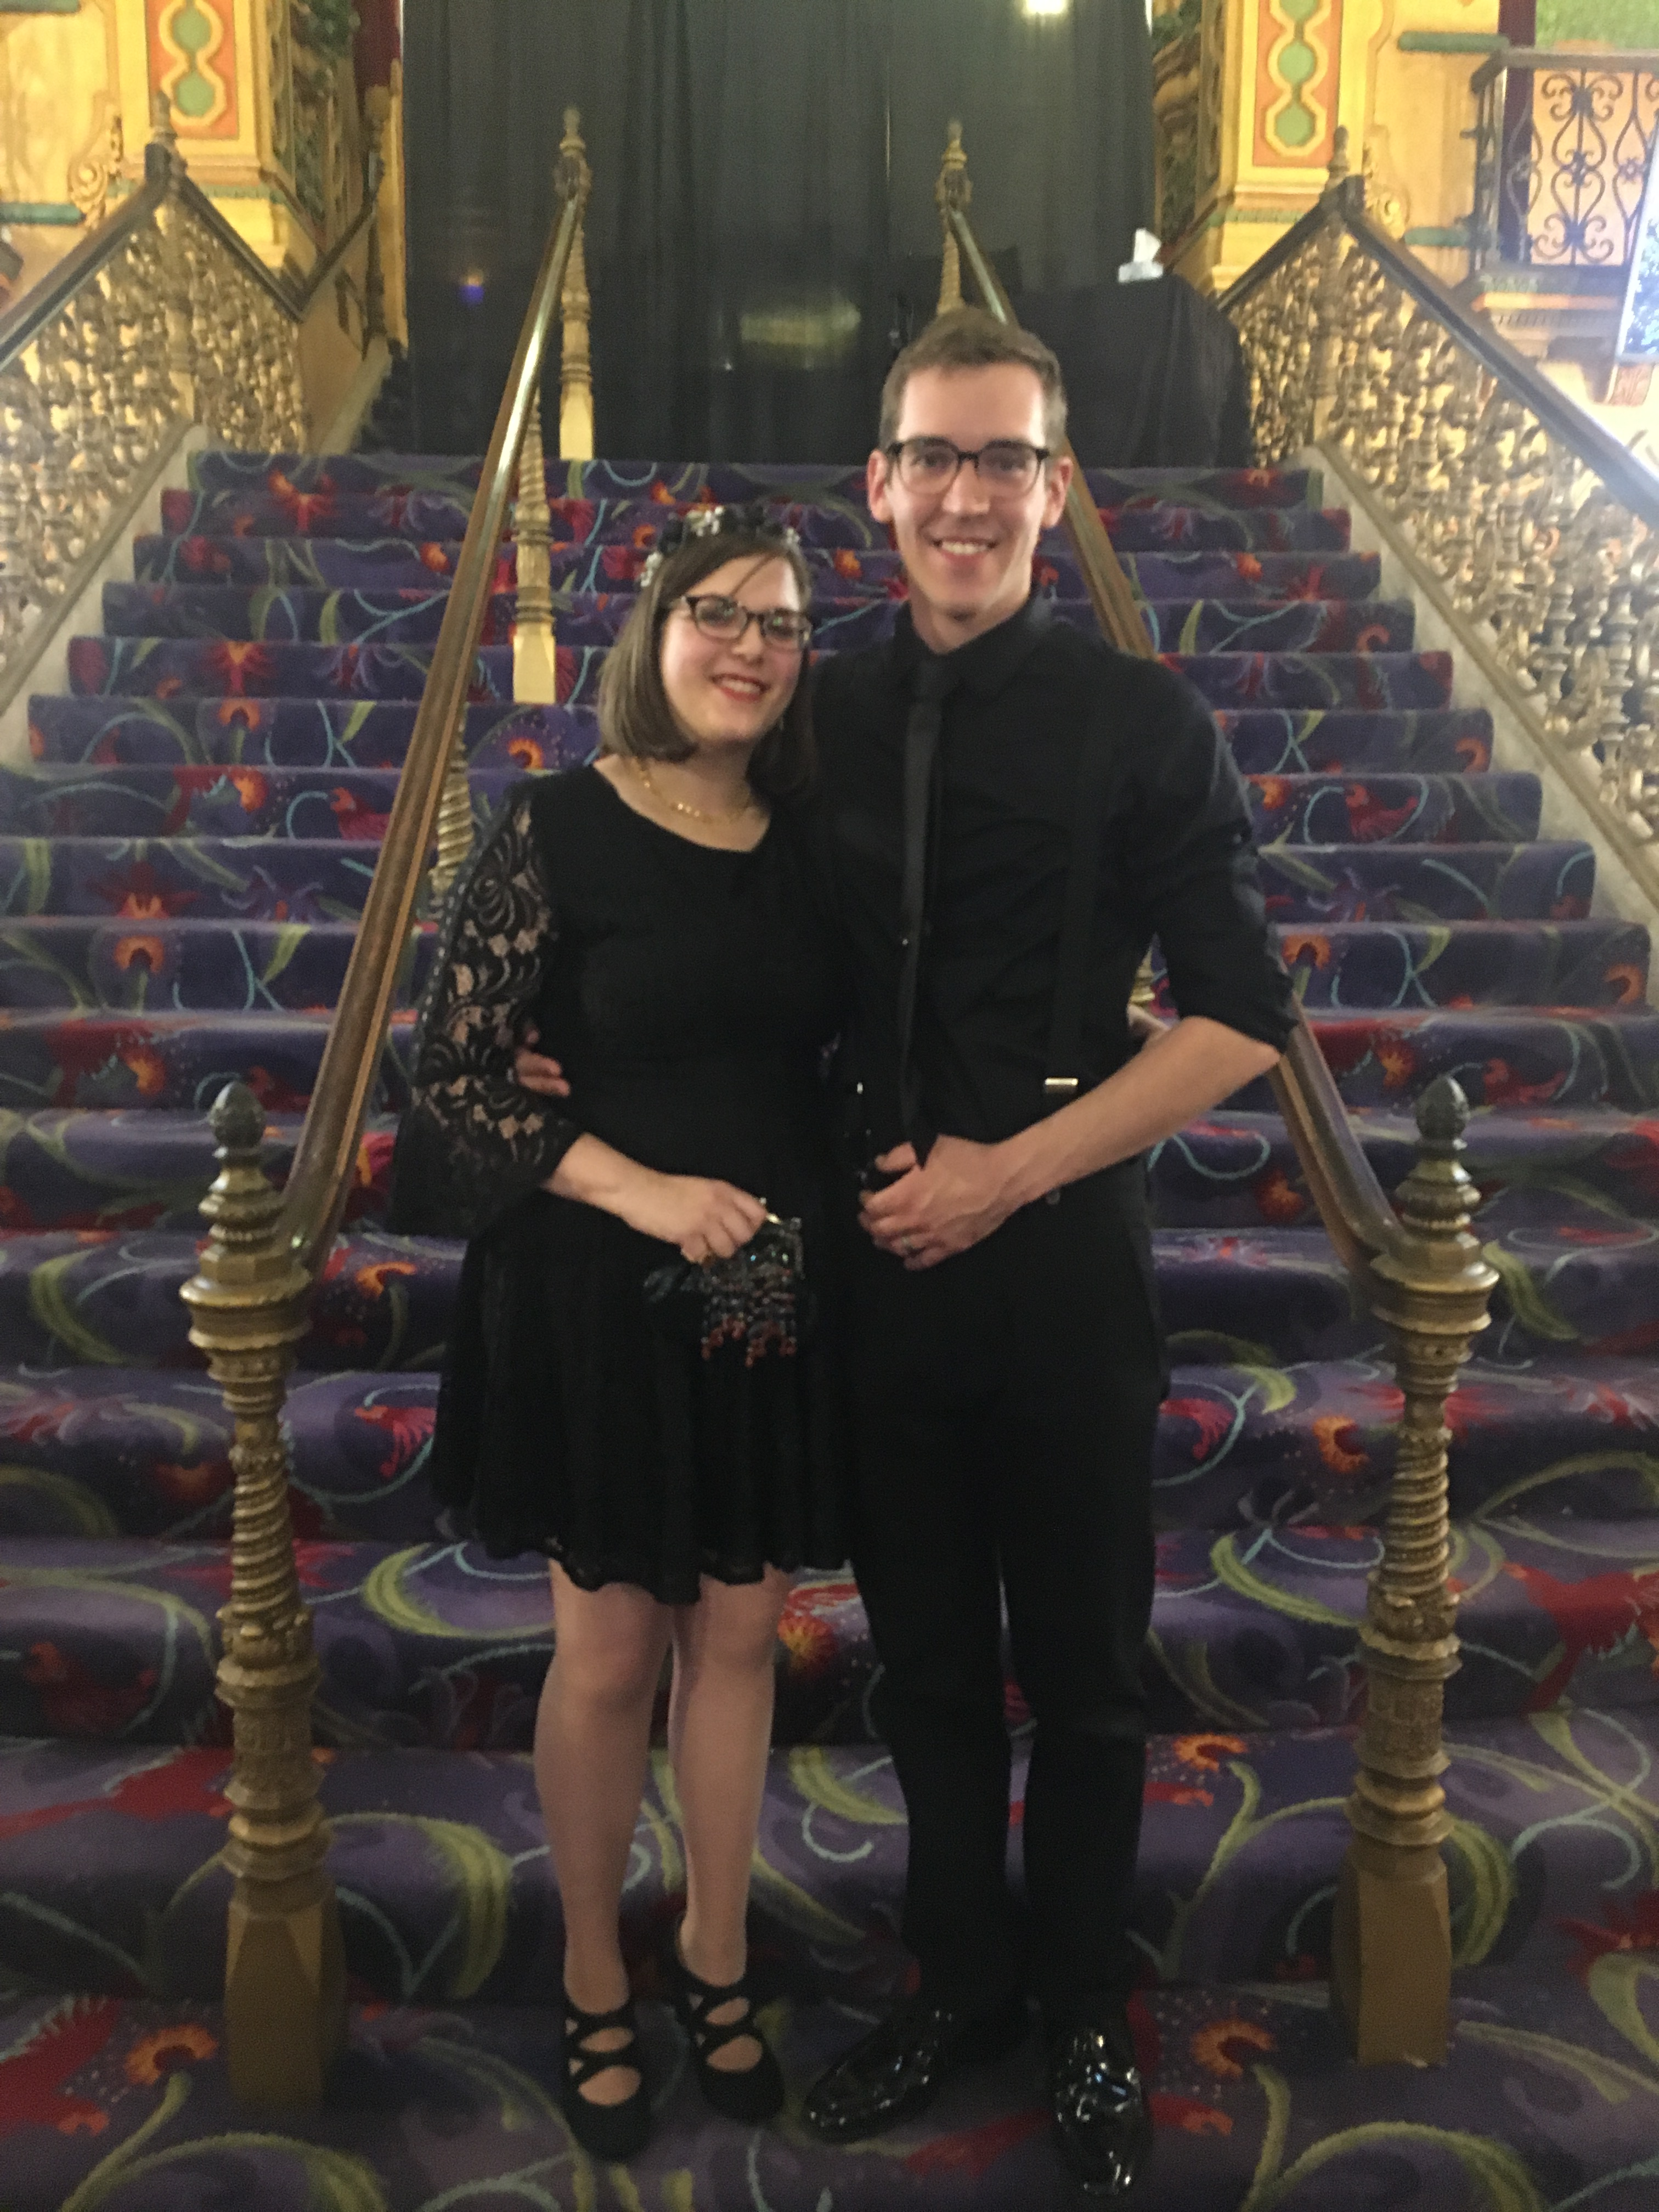 Mr. Will Ozbolt and Mrs. Katrina Ozbolt were married on Halloween in 2018 at the Akron Civic Theatre